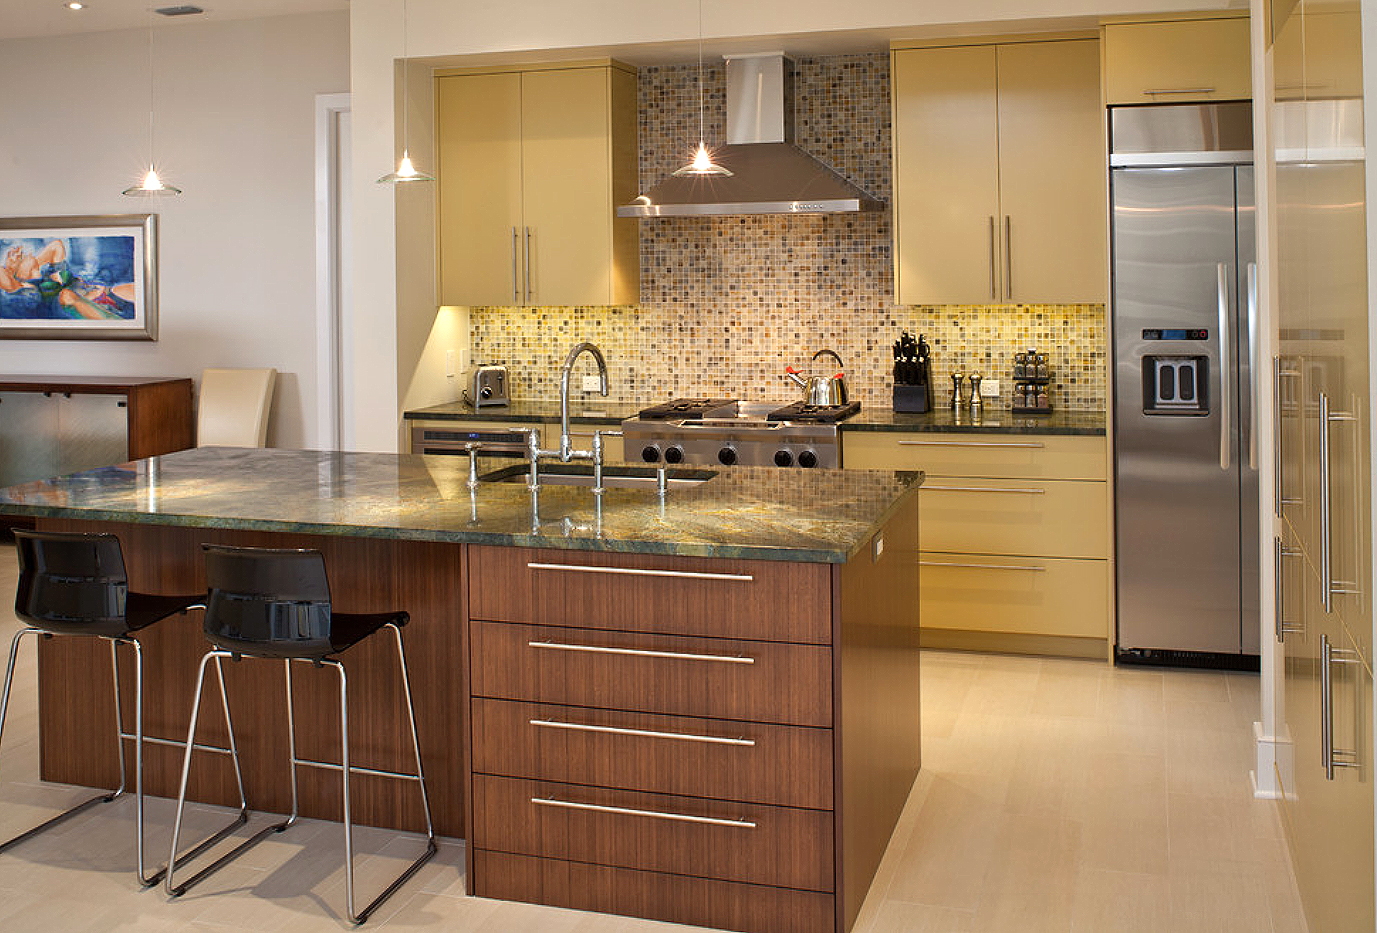 Luxury kitchen designs 2013 images for Kitchen design houzz